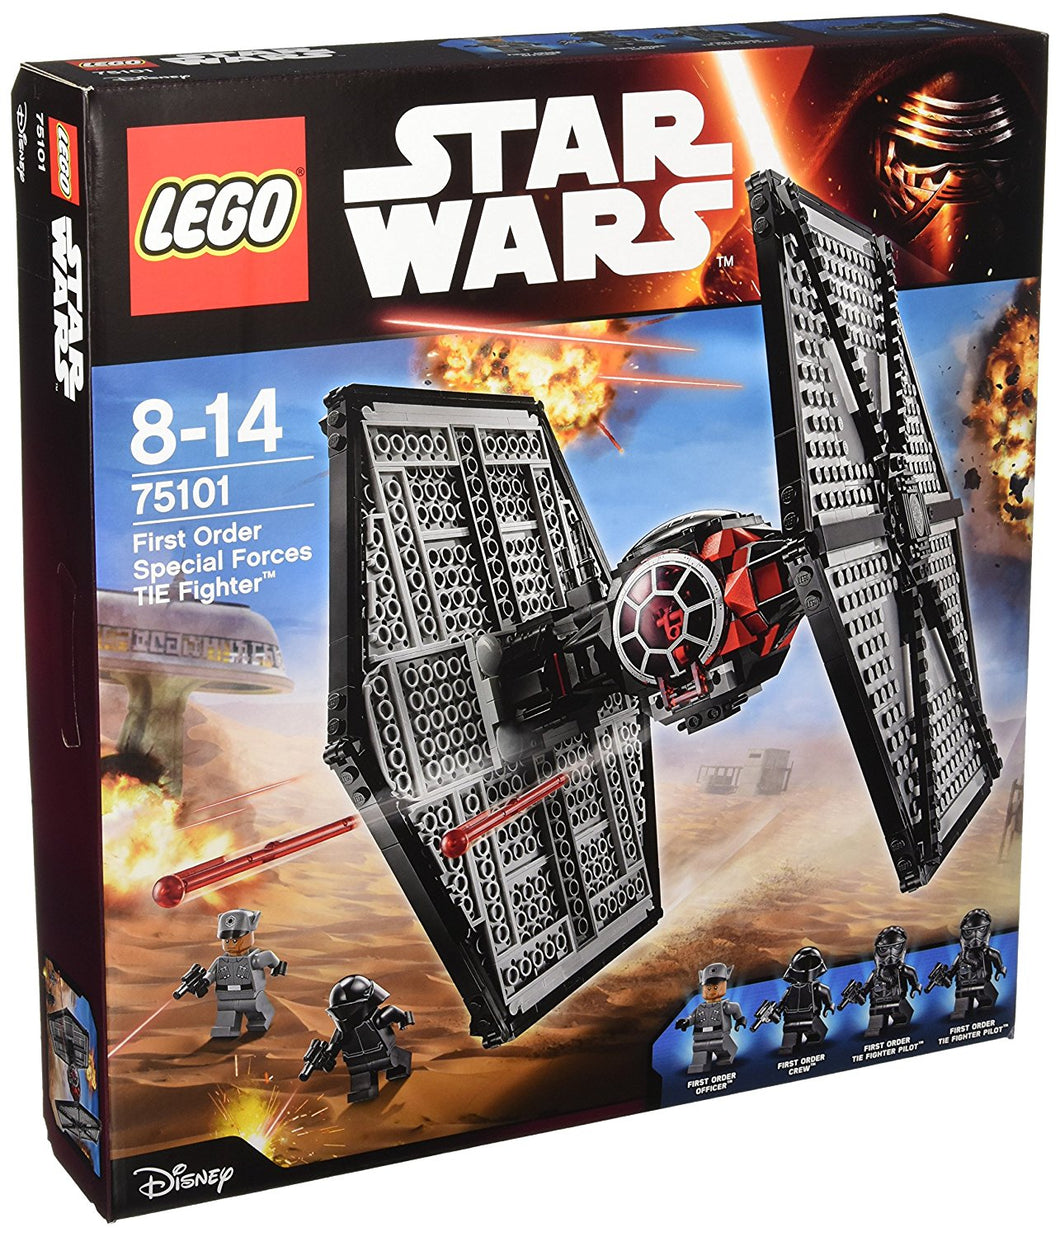 75101 LEGO Star Wars: First Order Special Forces TIE Fighter